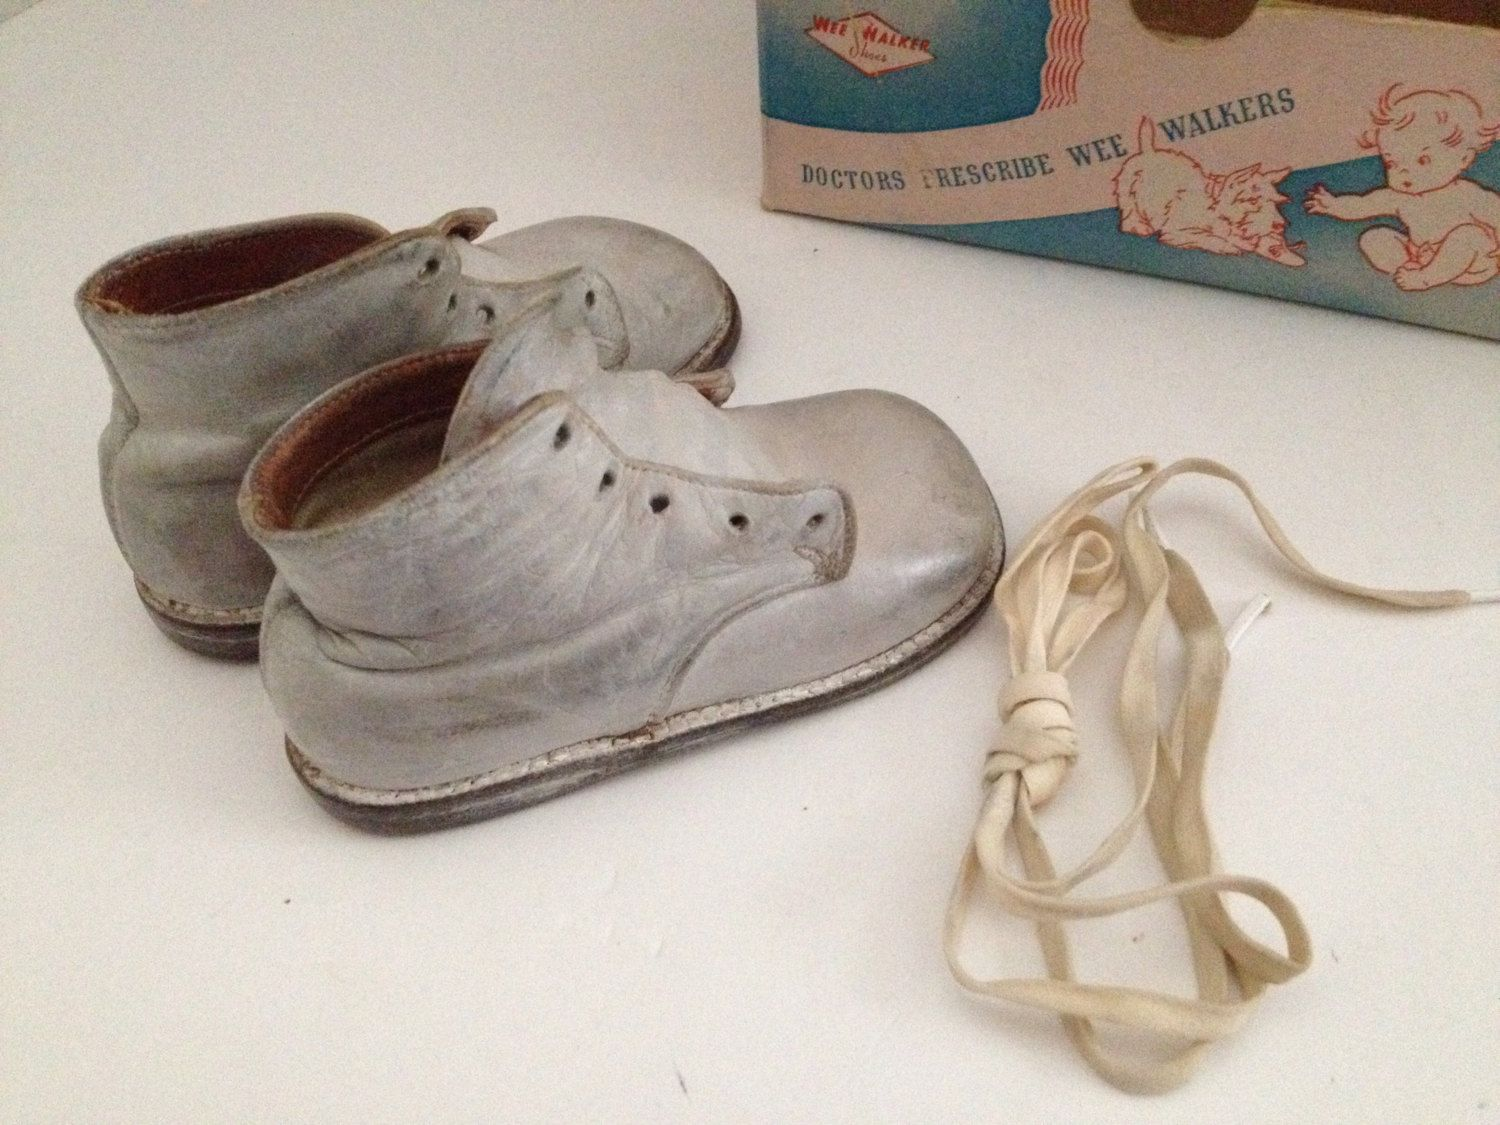 82a2a30e10cdf Vintage Baby Shoes Wee Walkers with Original Box Moran Shoe Company ...